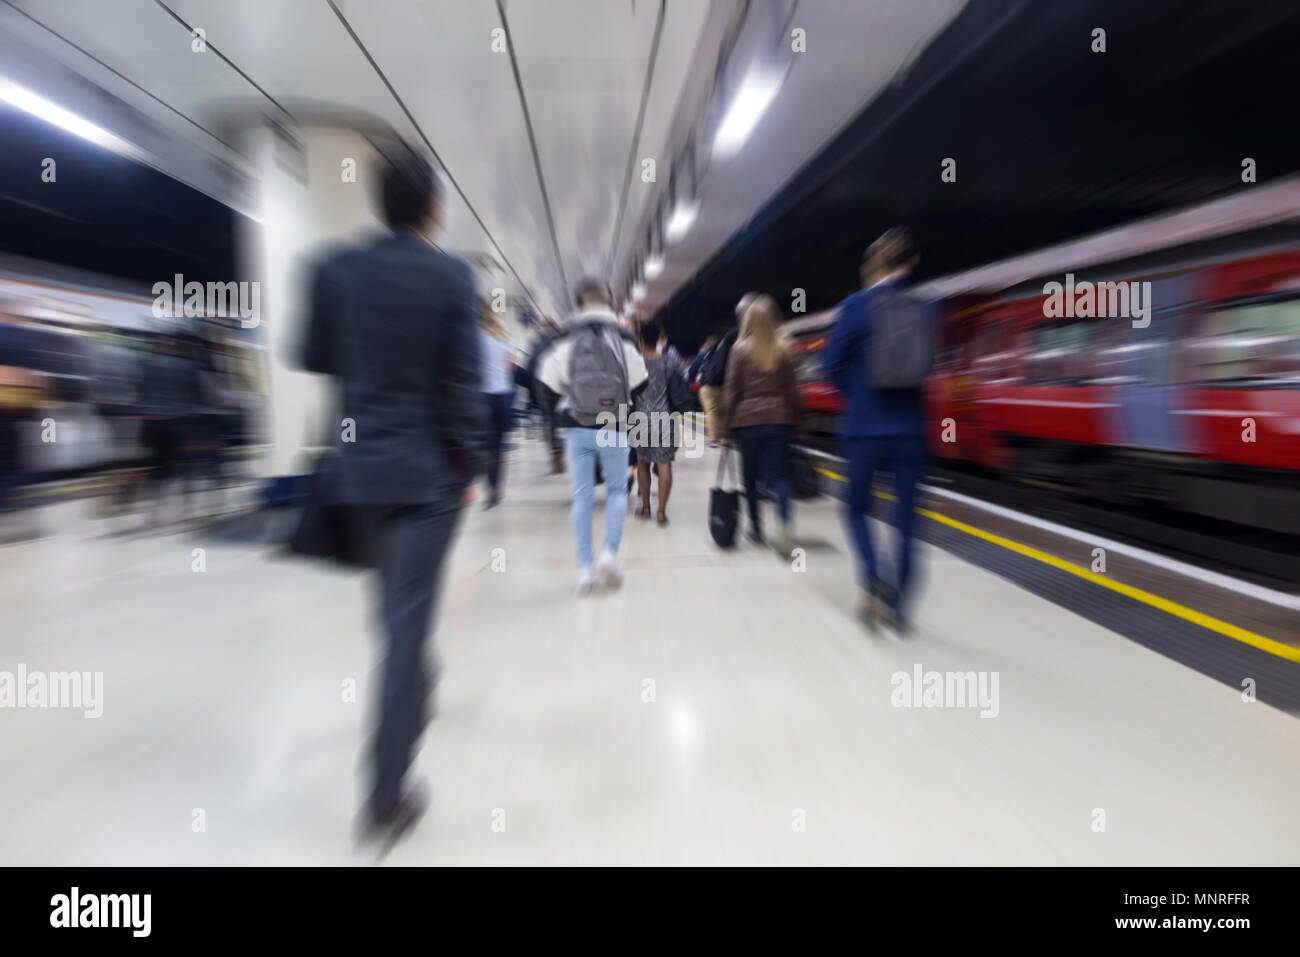 Commuters racing to work on the platform of a London station once the train pulls in - Stock Image